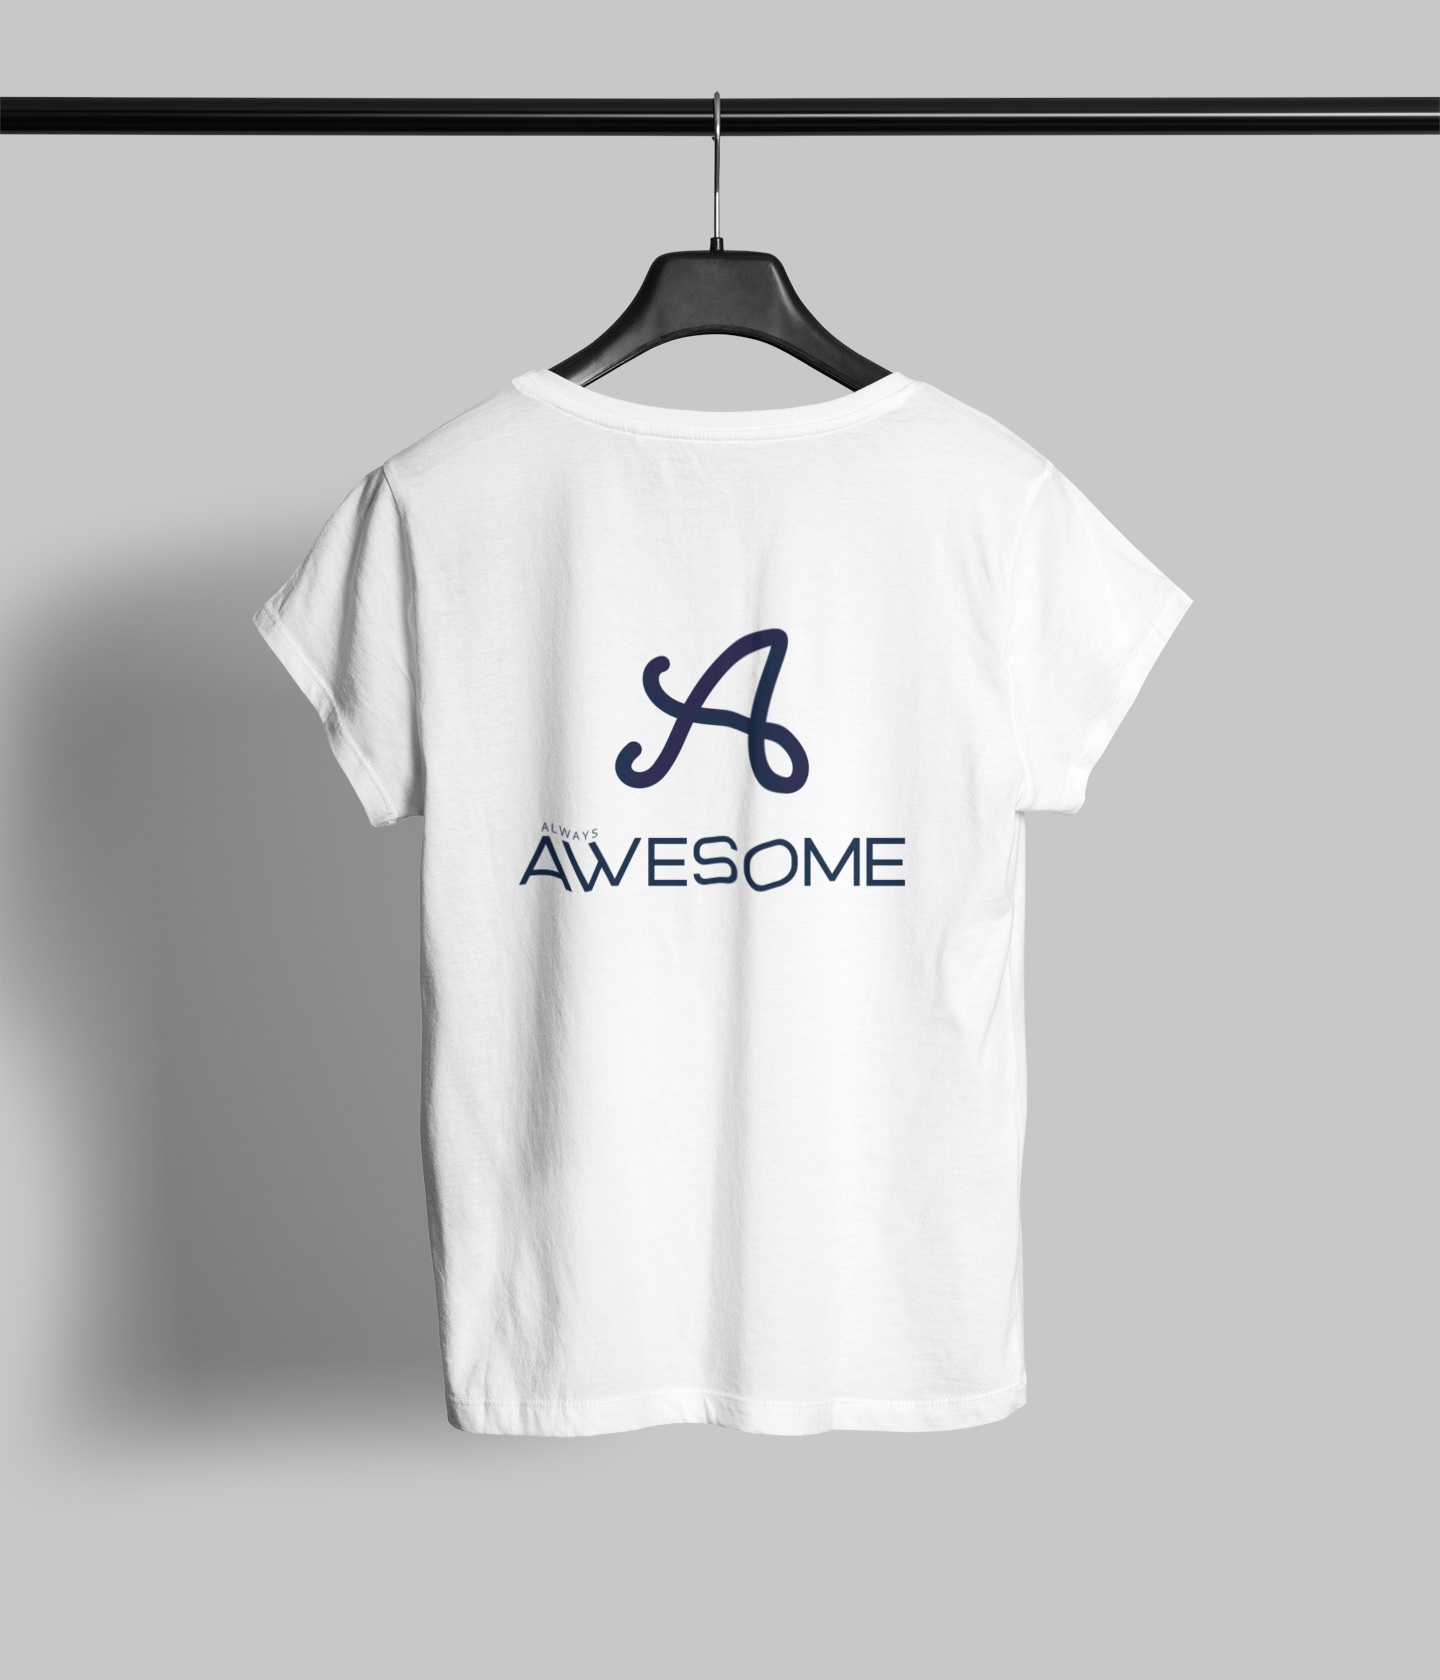 Always Awesome 2 Clothing Printrove White 6